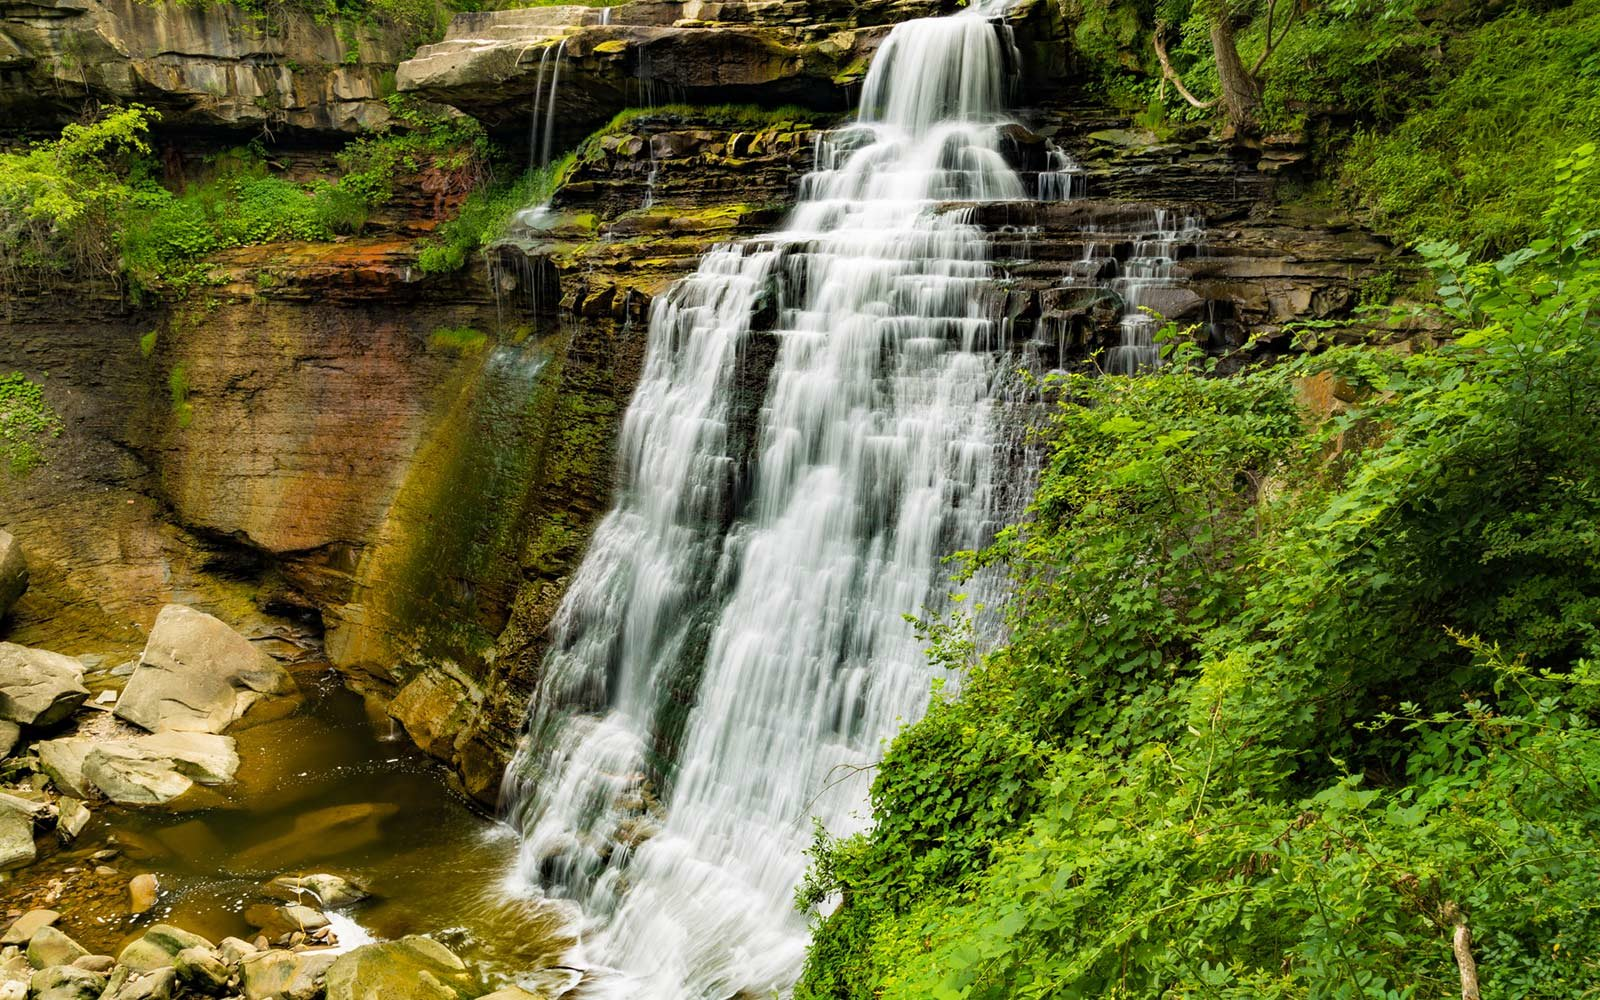 Reasons to Love the Only National Park in Ohio